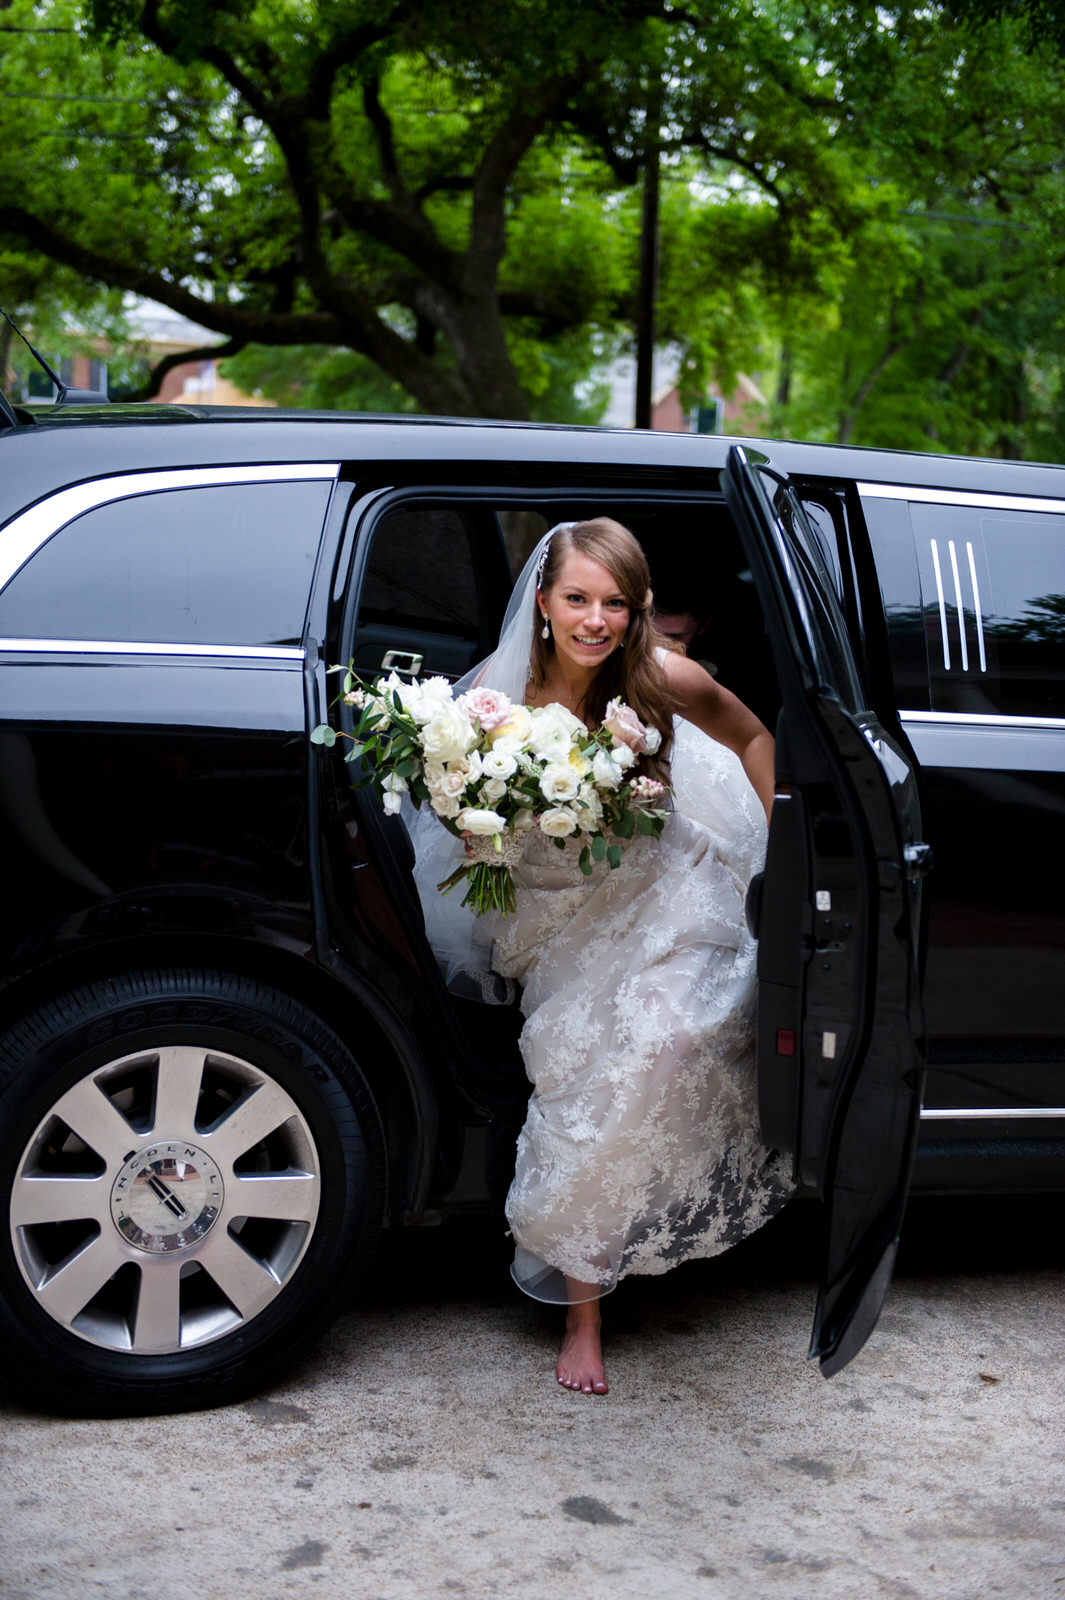 Bride with her bouquet stepping out limo to the reception. Houston, Texas. Maxit Flower Design,  Alyssa Meeks  ,  Chris Bailey Photography